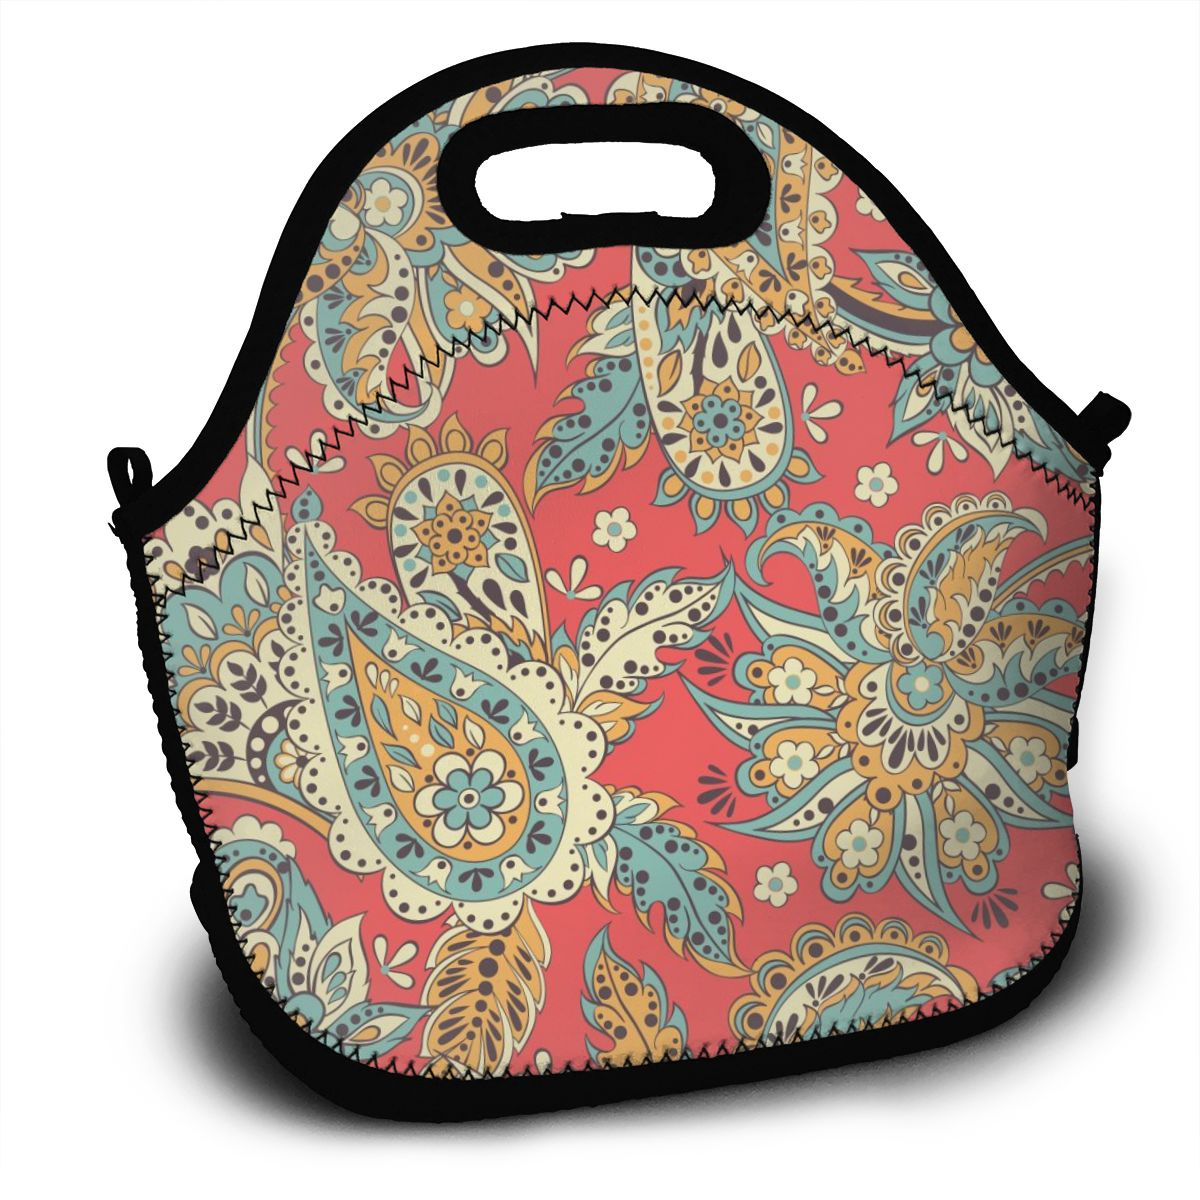 Portable Lunch Bag Indian Paisley <font><b>Fllowers</b></font> Women Reusable Lunch Bags For Work Pinic Travel 2020 Casual Handbags image